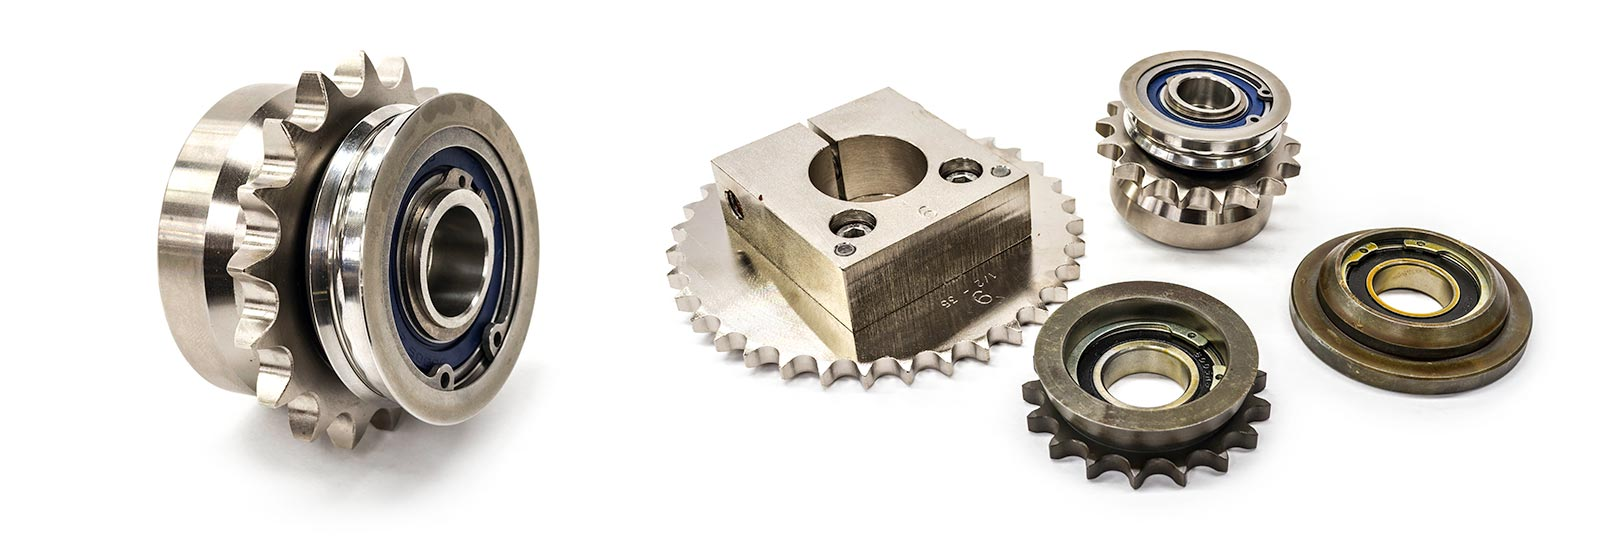 Multivac sprockets and bearings